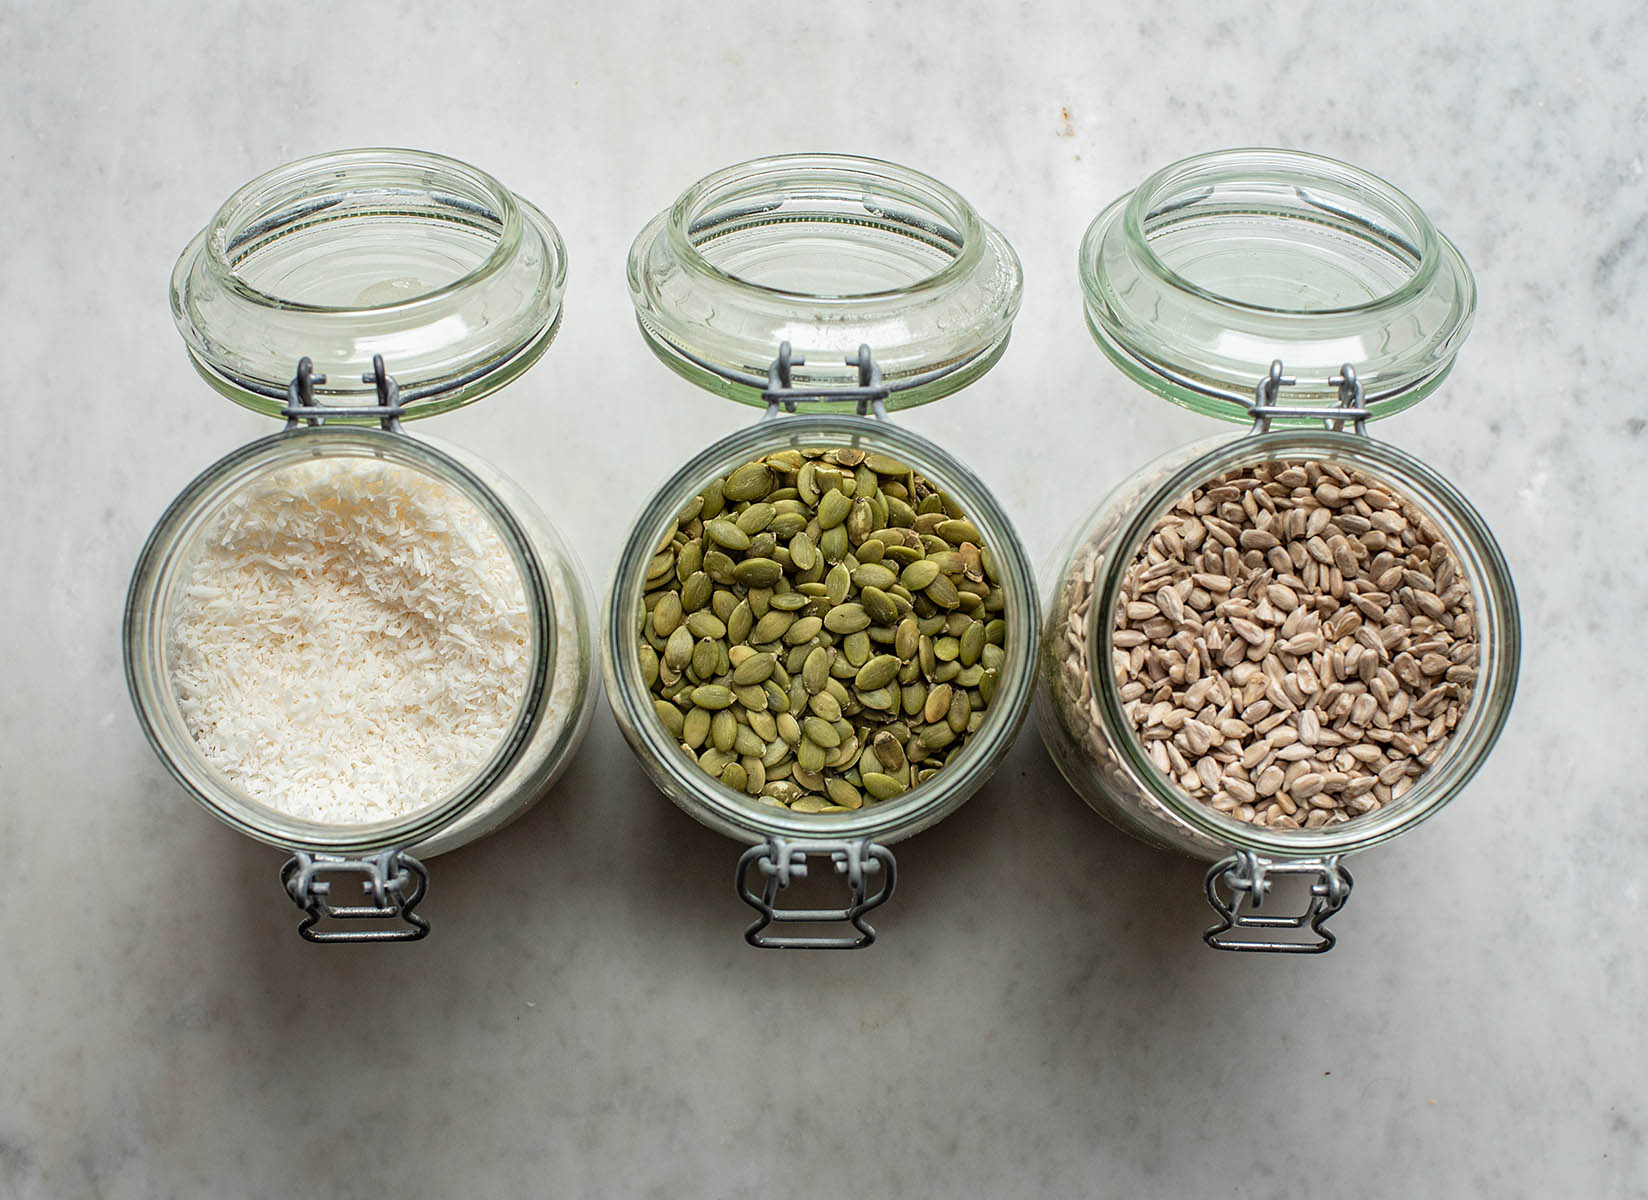 Three flip-top glass jars in a row, filled with coconut, pepitas, and sunflower seeds.